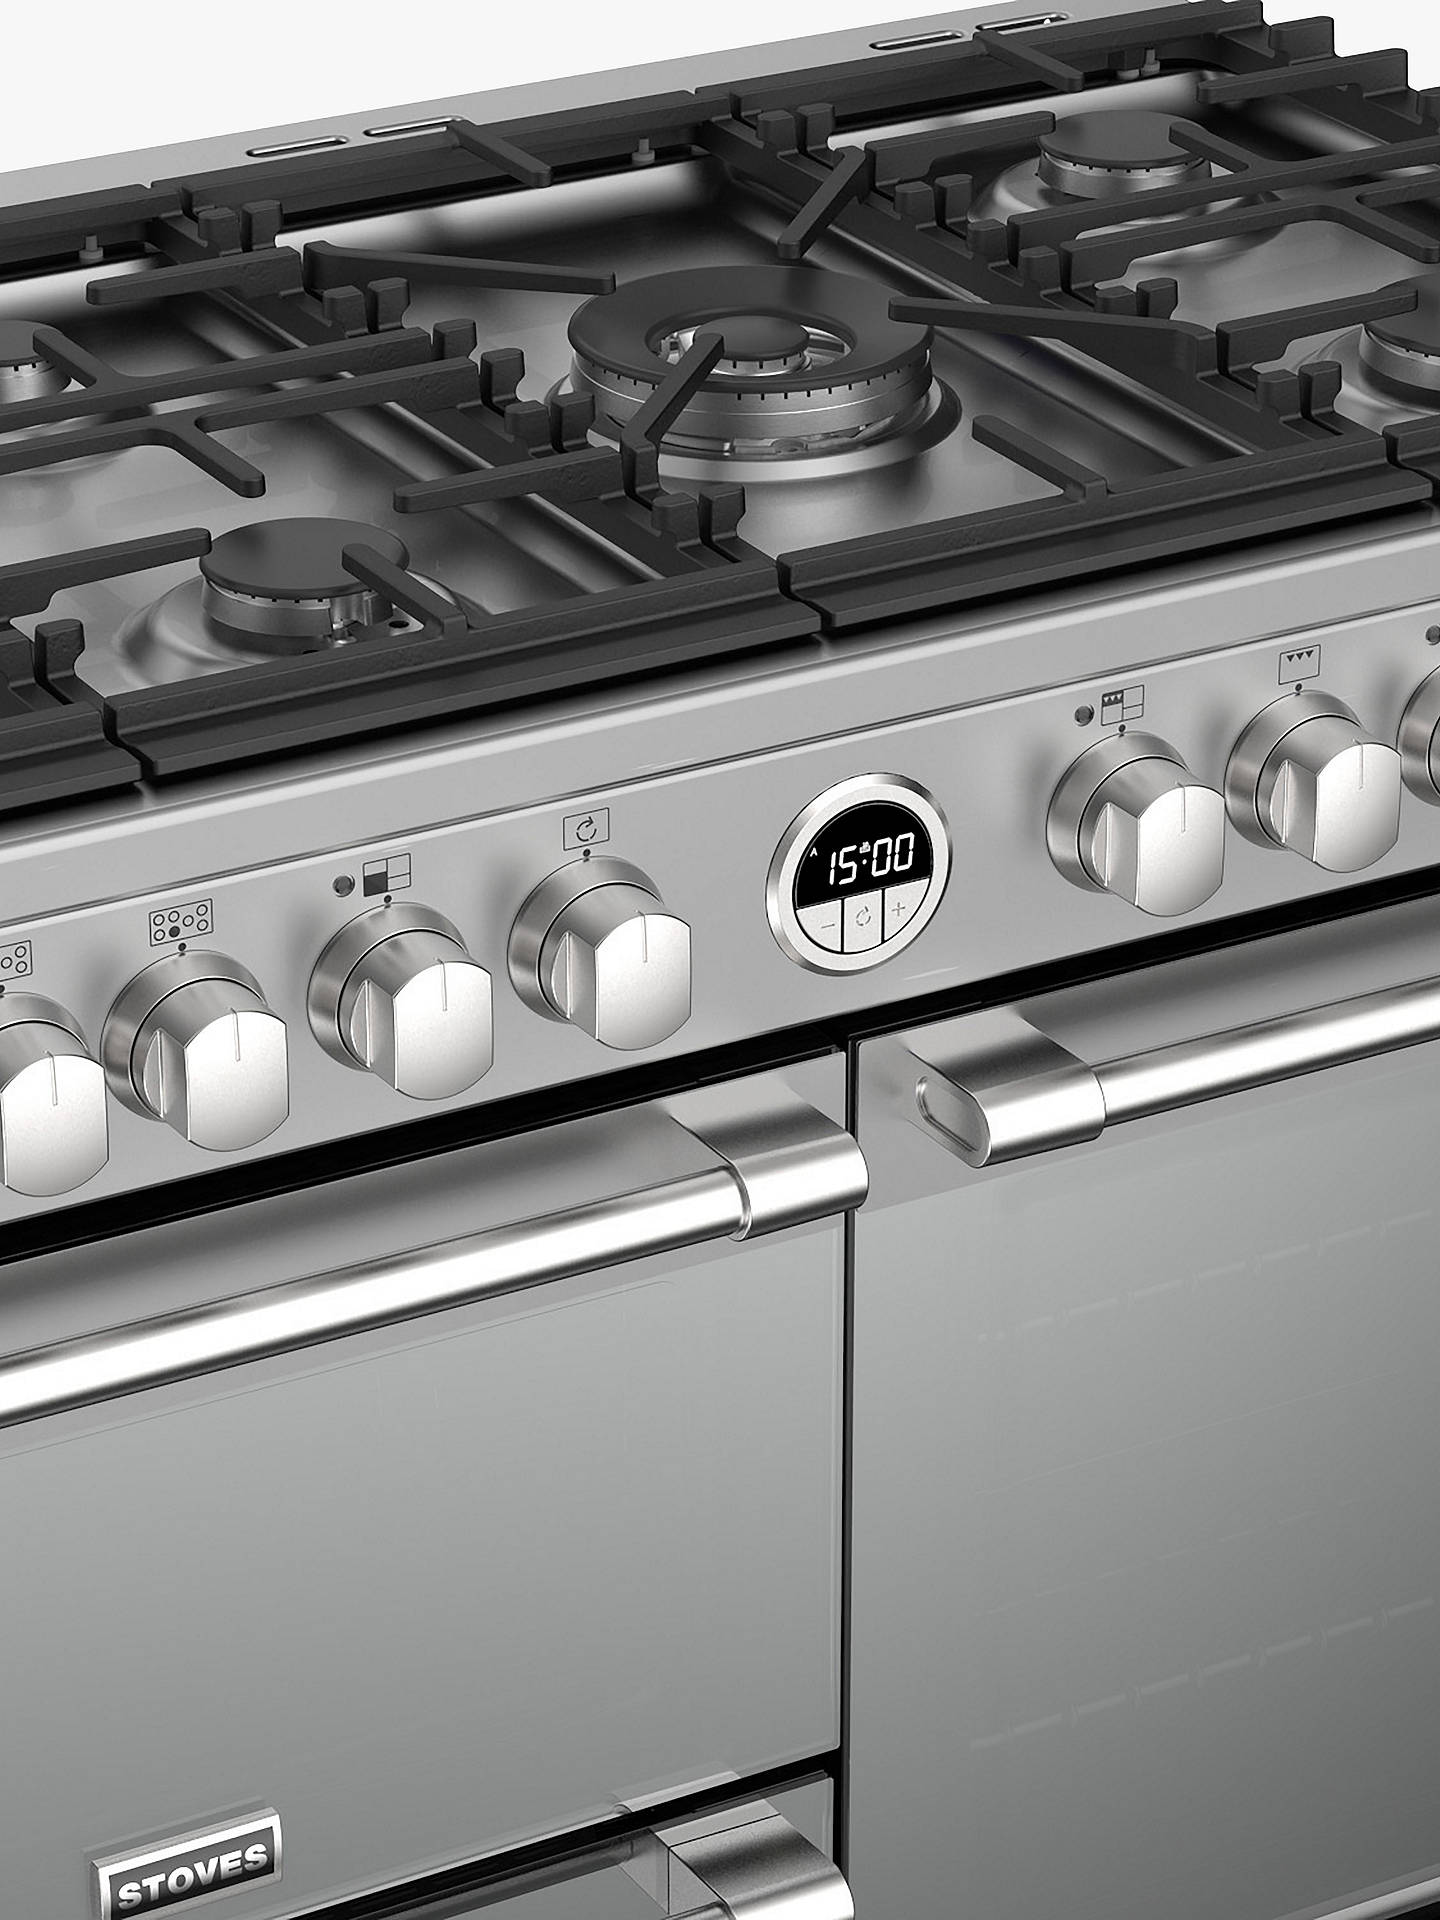 Buy Stoves Sterling Deluxe S1000DF Range Cooker, Silver Online at johnlewis.com